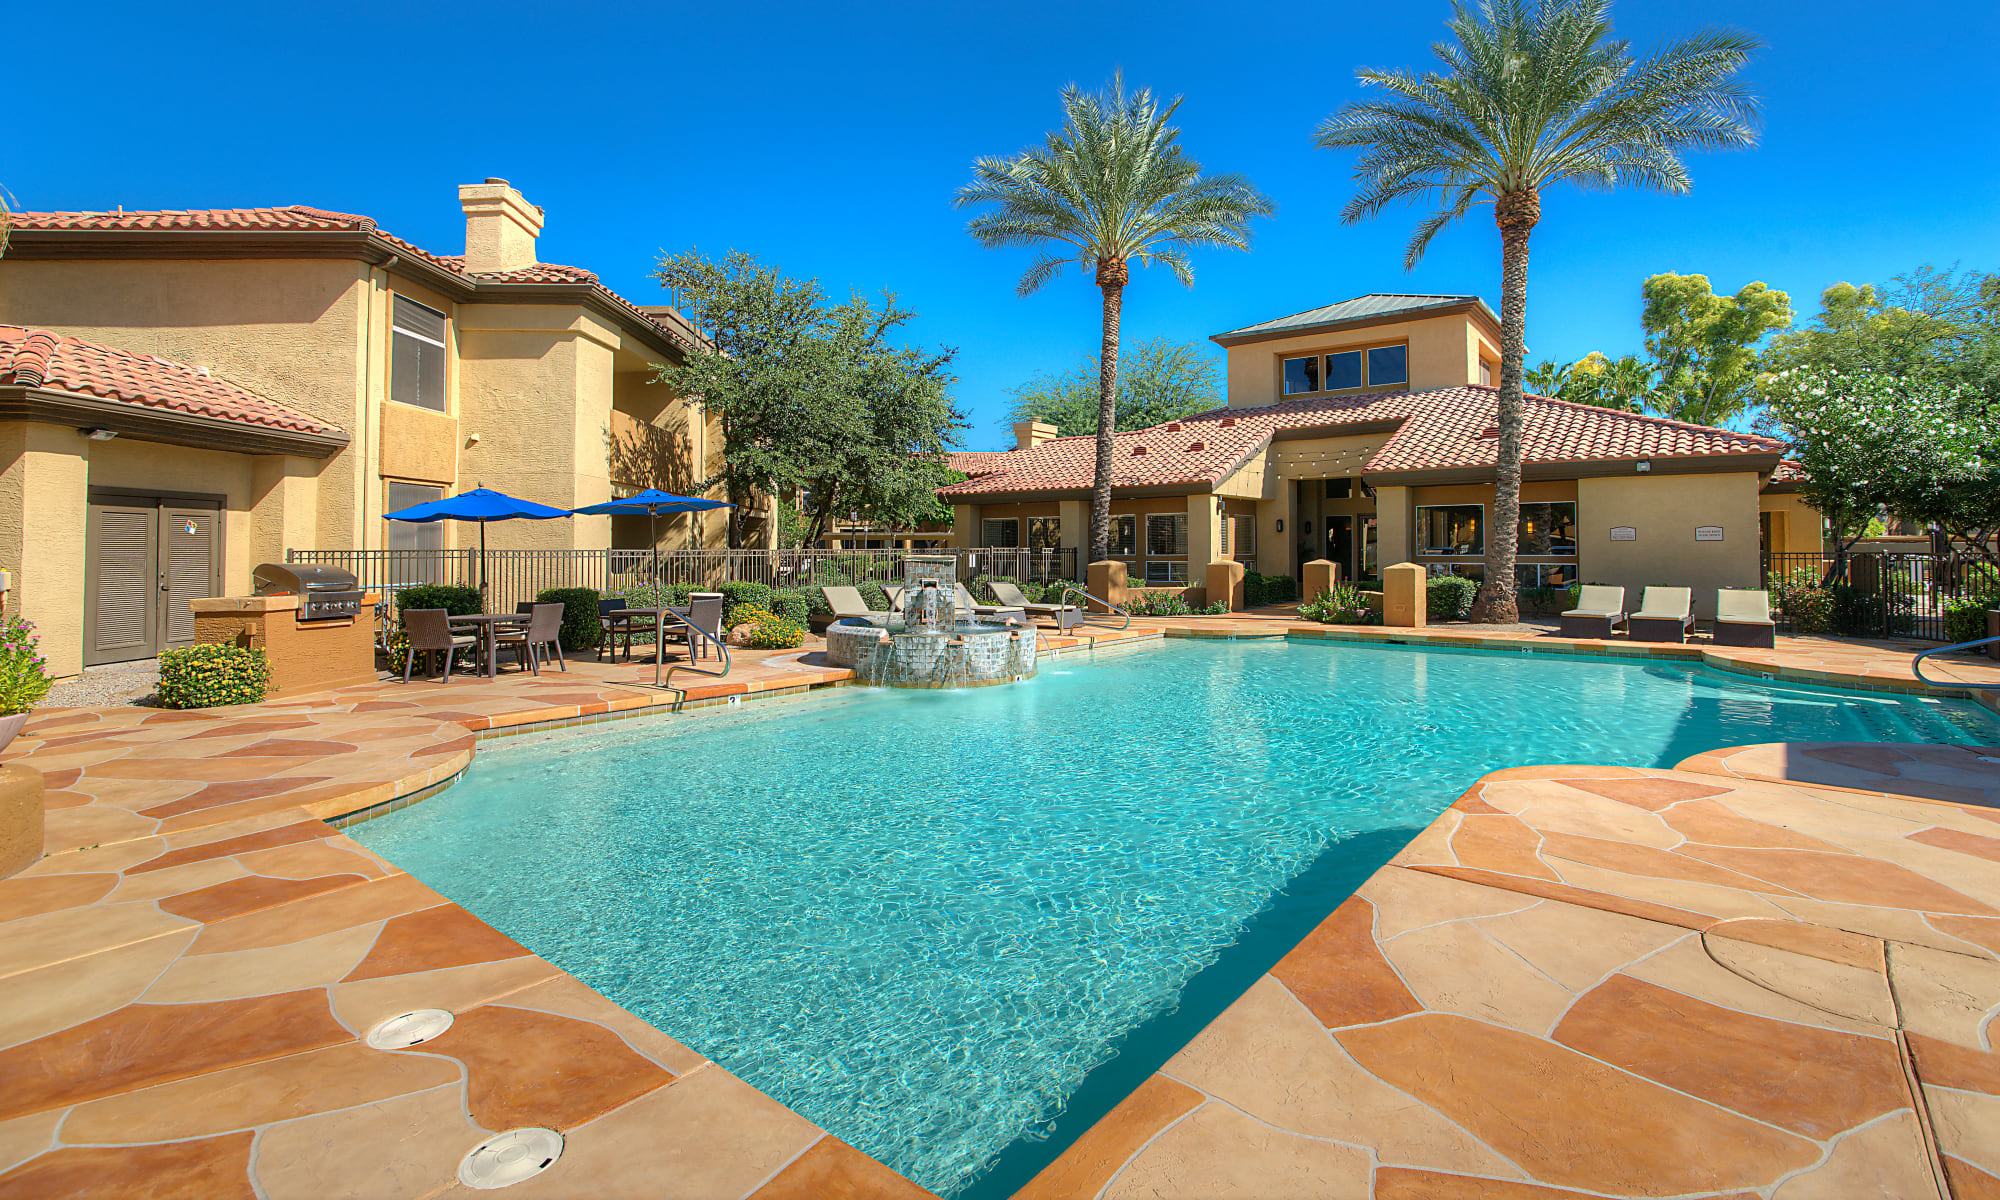 Apartments in Scottsdale, Arizona at Bellagio